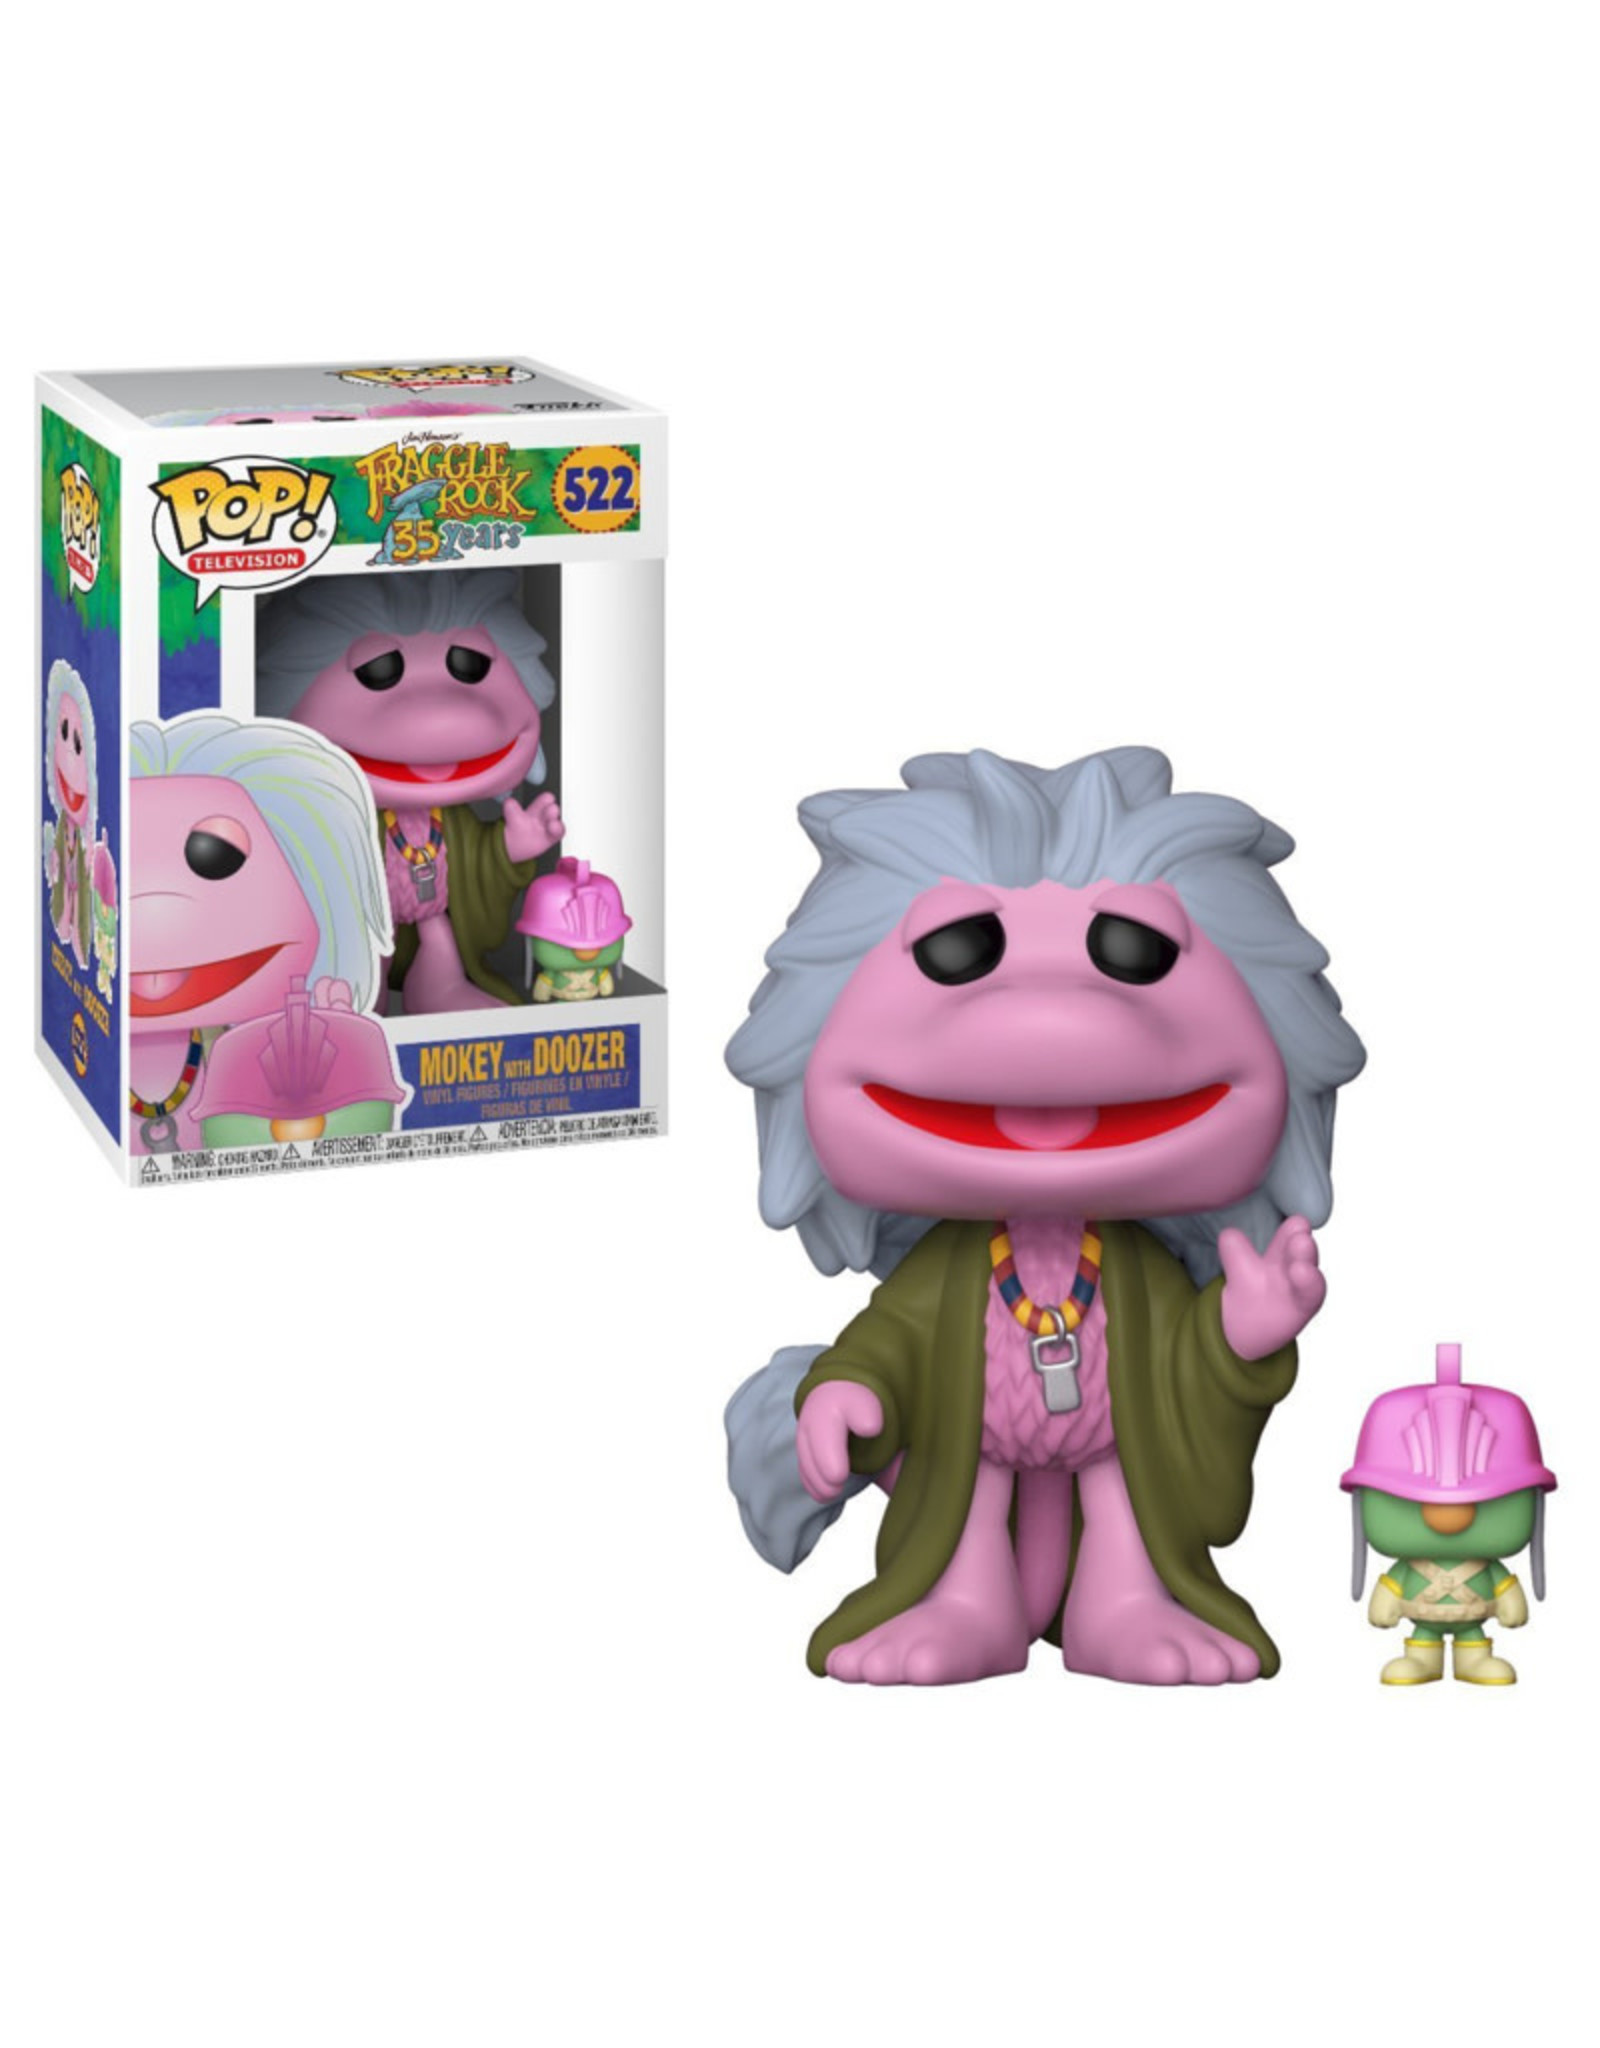 Funko Pop! Funko Pop! Television nr522 Fraggle Rock - Mokey with Doozer